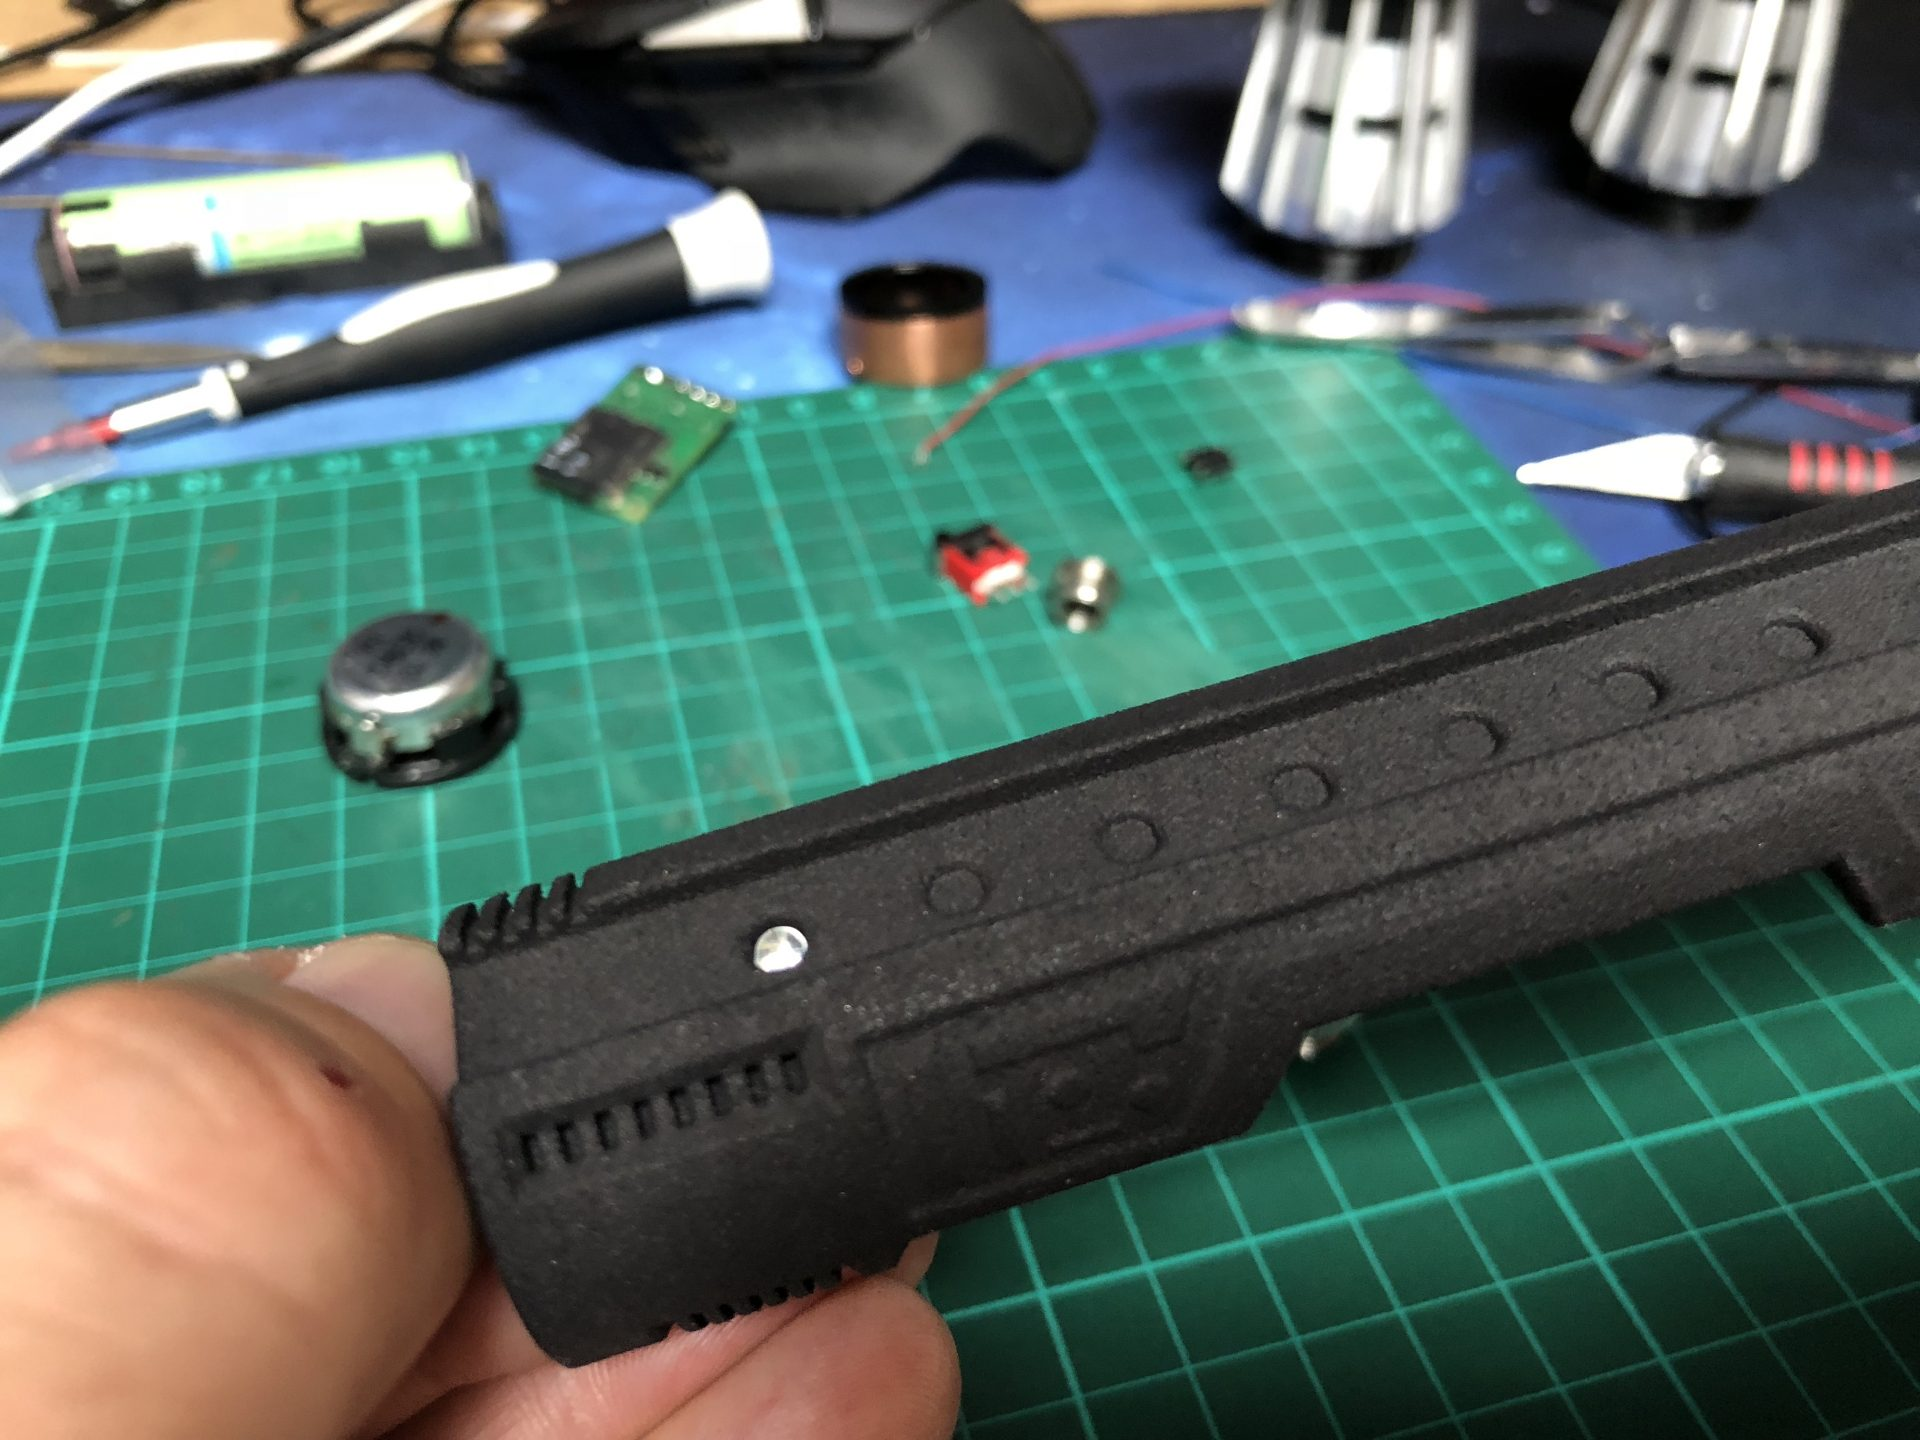 Diy Kr Sabers Darth Maul Goth 3designs Leds 3mm And 5mm Which Can Be Connected Using The Led Adapter Removing Img 3304